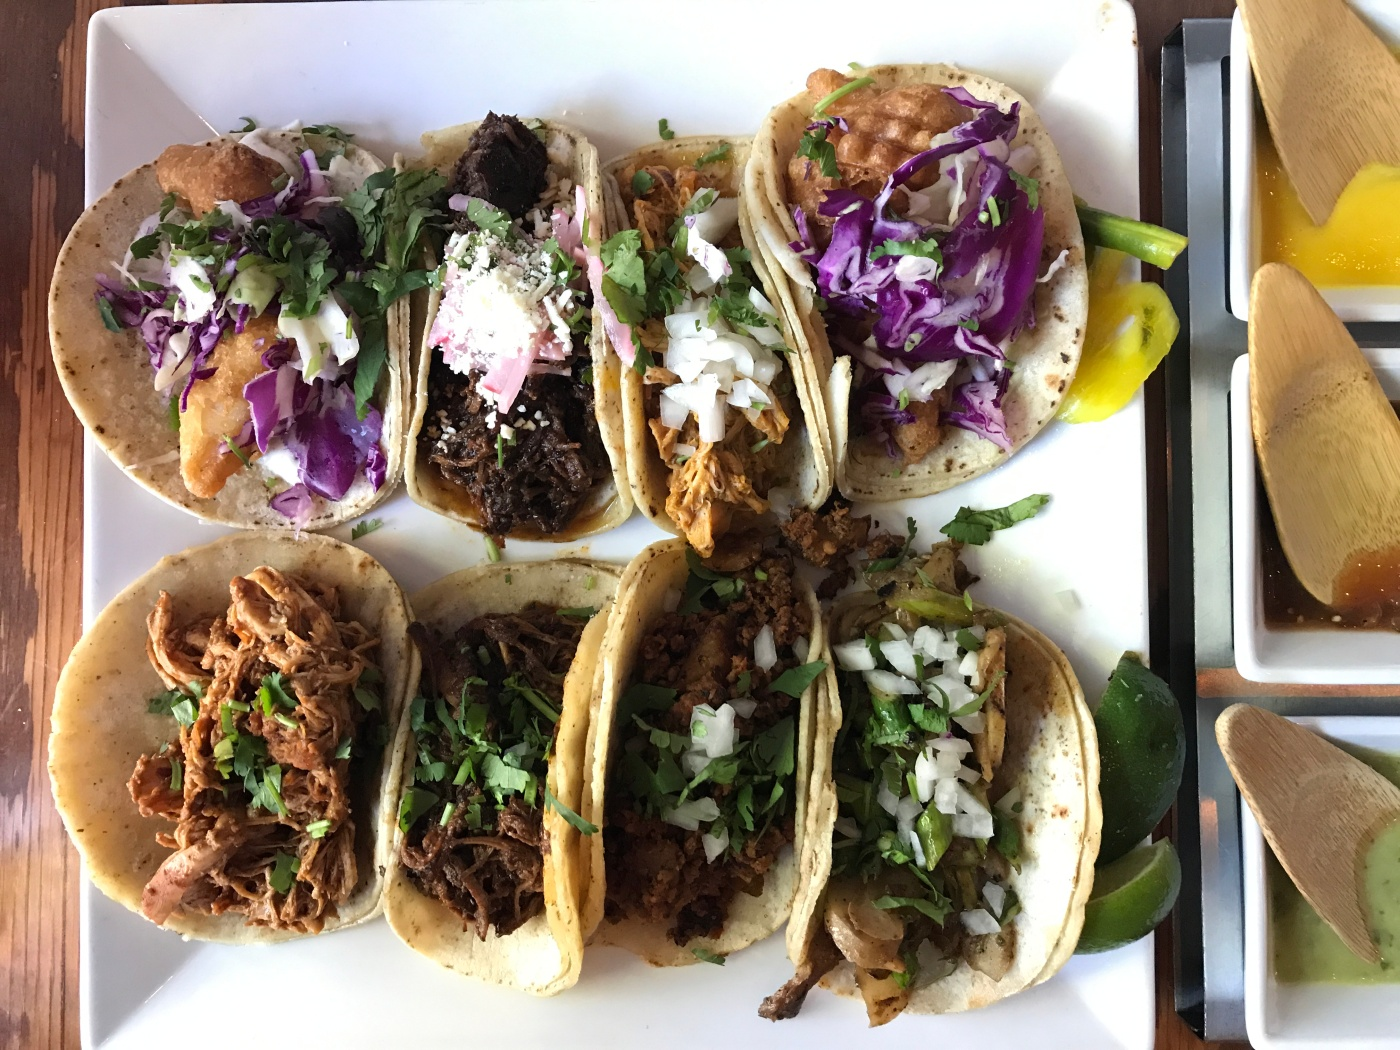 A Plate of Delicious Tacos at Tacolicious in Downtown Palo Alto, California